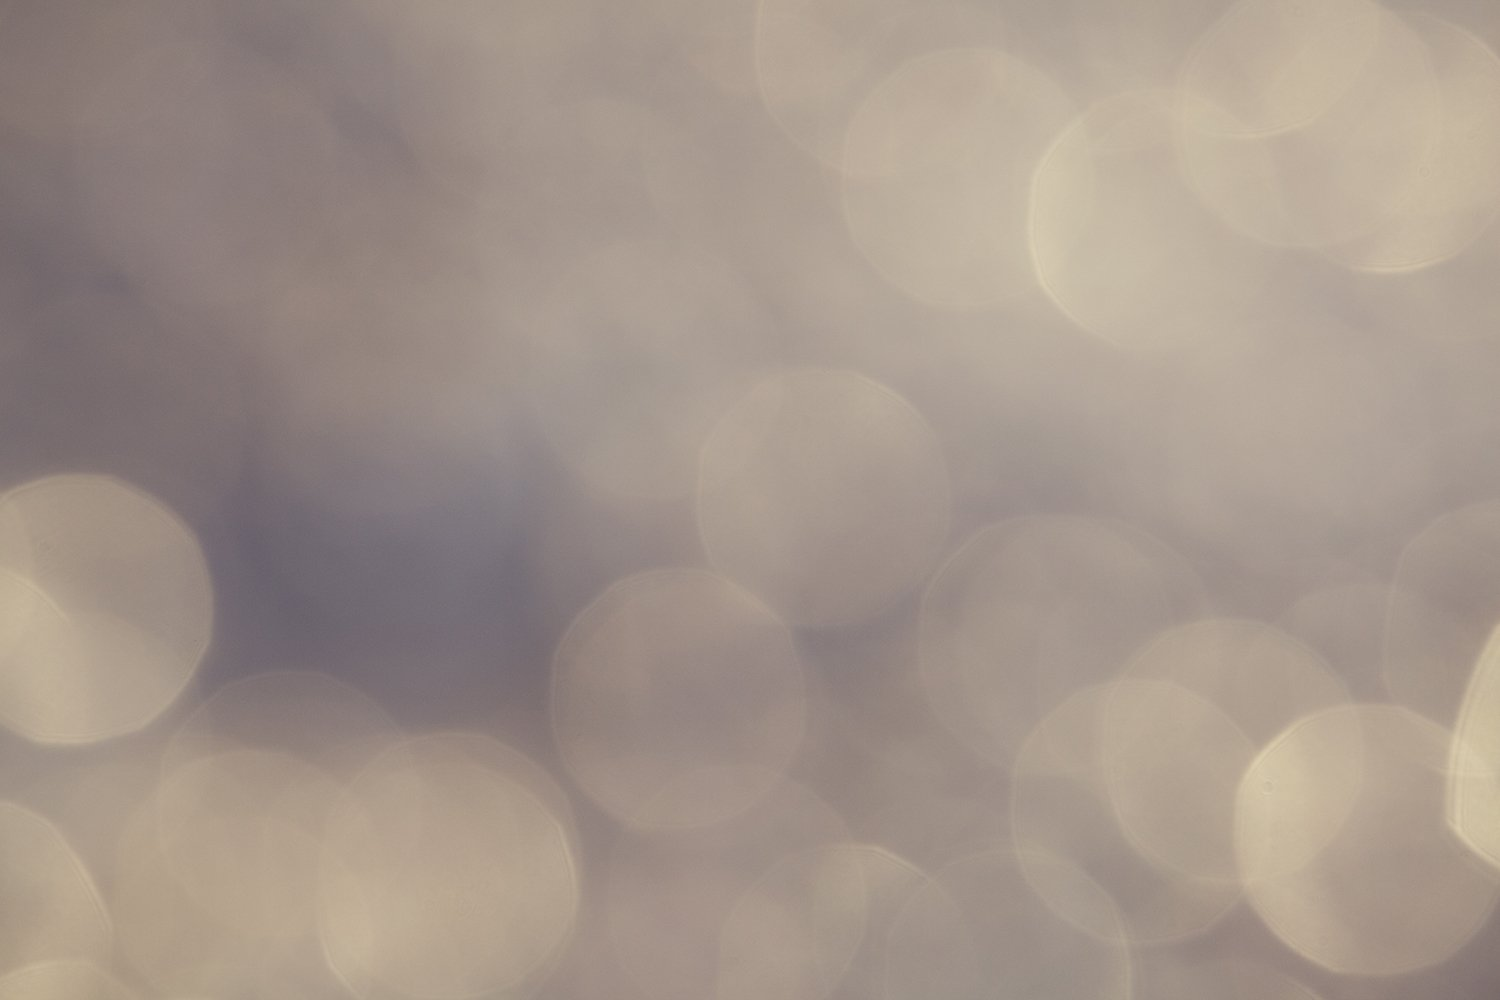 Festive abstract background, colorful bokeh and circles example image 1